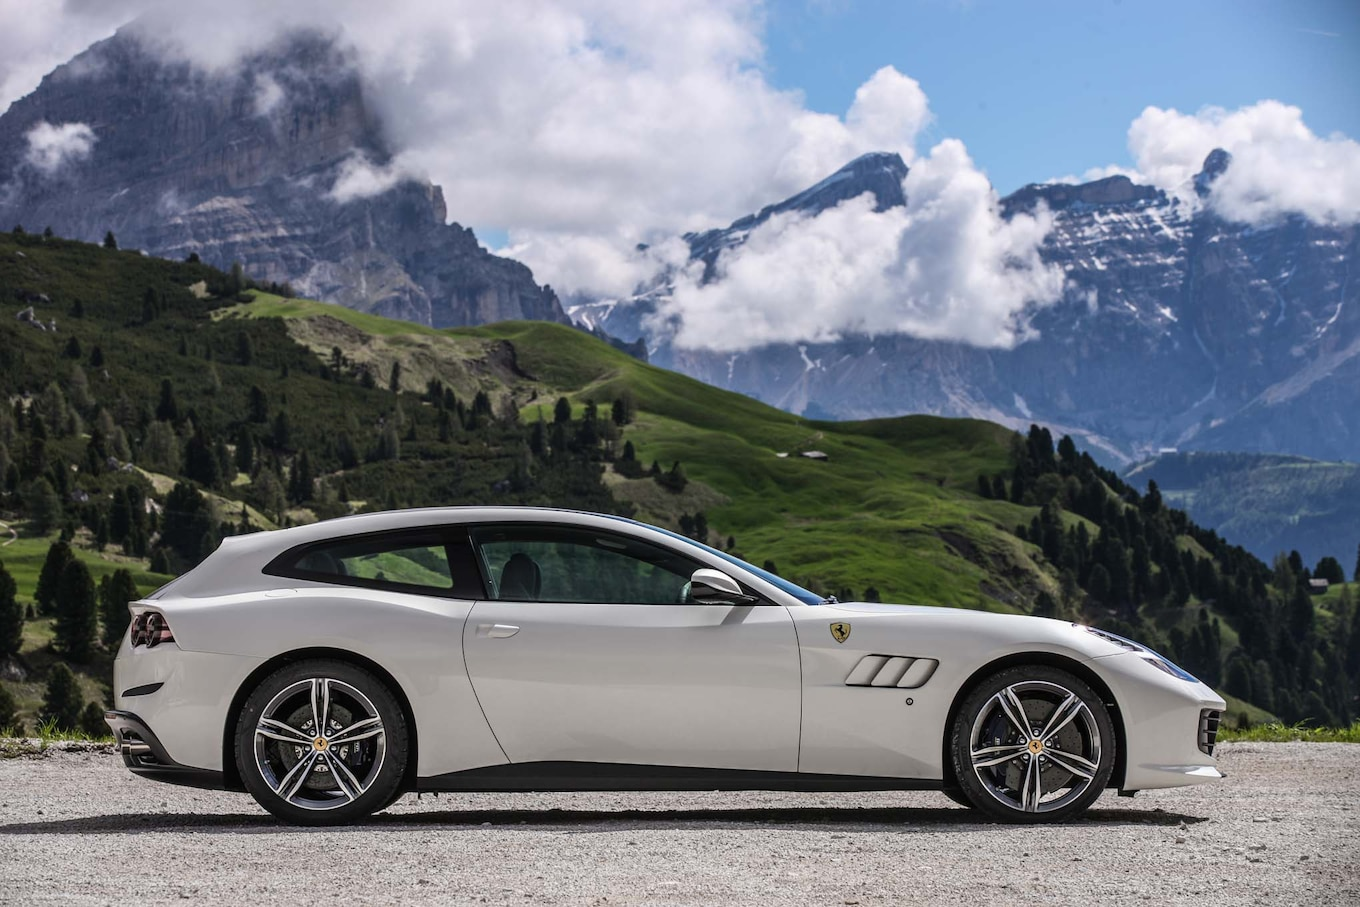 2017 Ferrari GTC4Lusso Reviews and Rating | Motor Trend